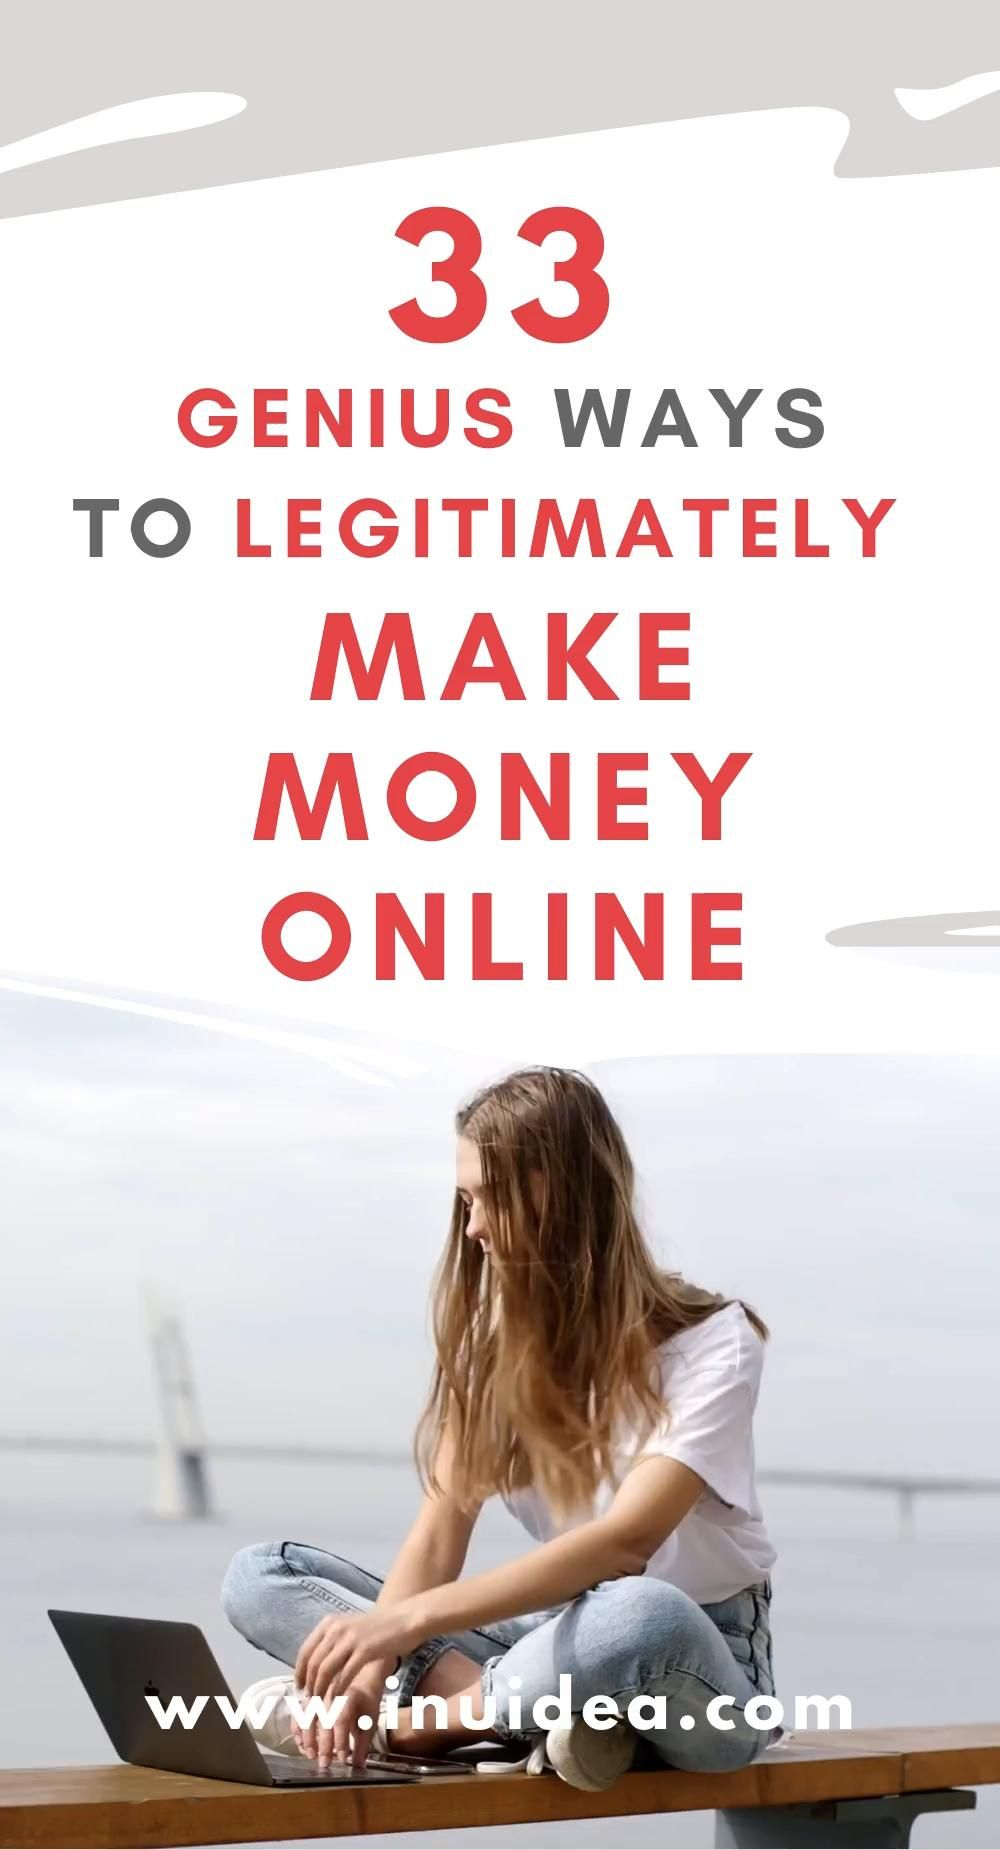 Find out 33 legitimate ways to make money online. Check out these proven online business ideas, start a successful online business and make extra money from home. #MakeMoneyOnline #OnlineBusiness